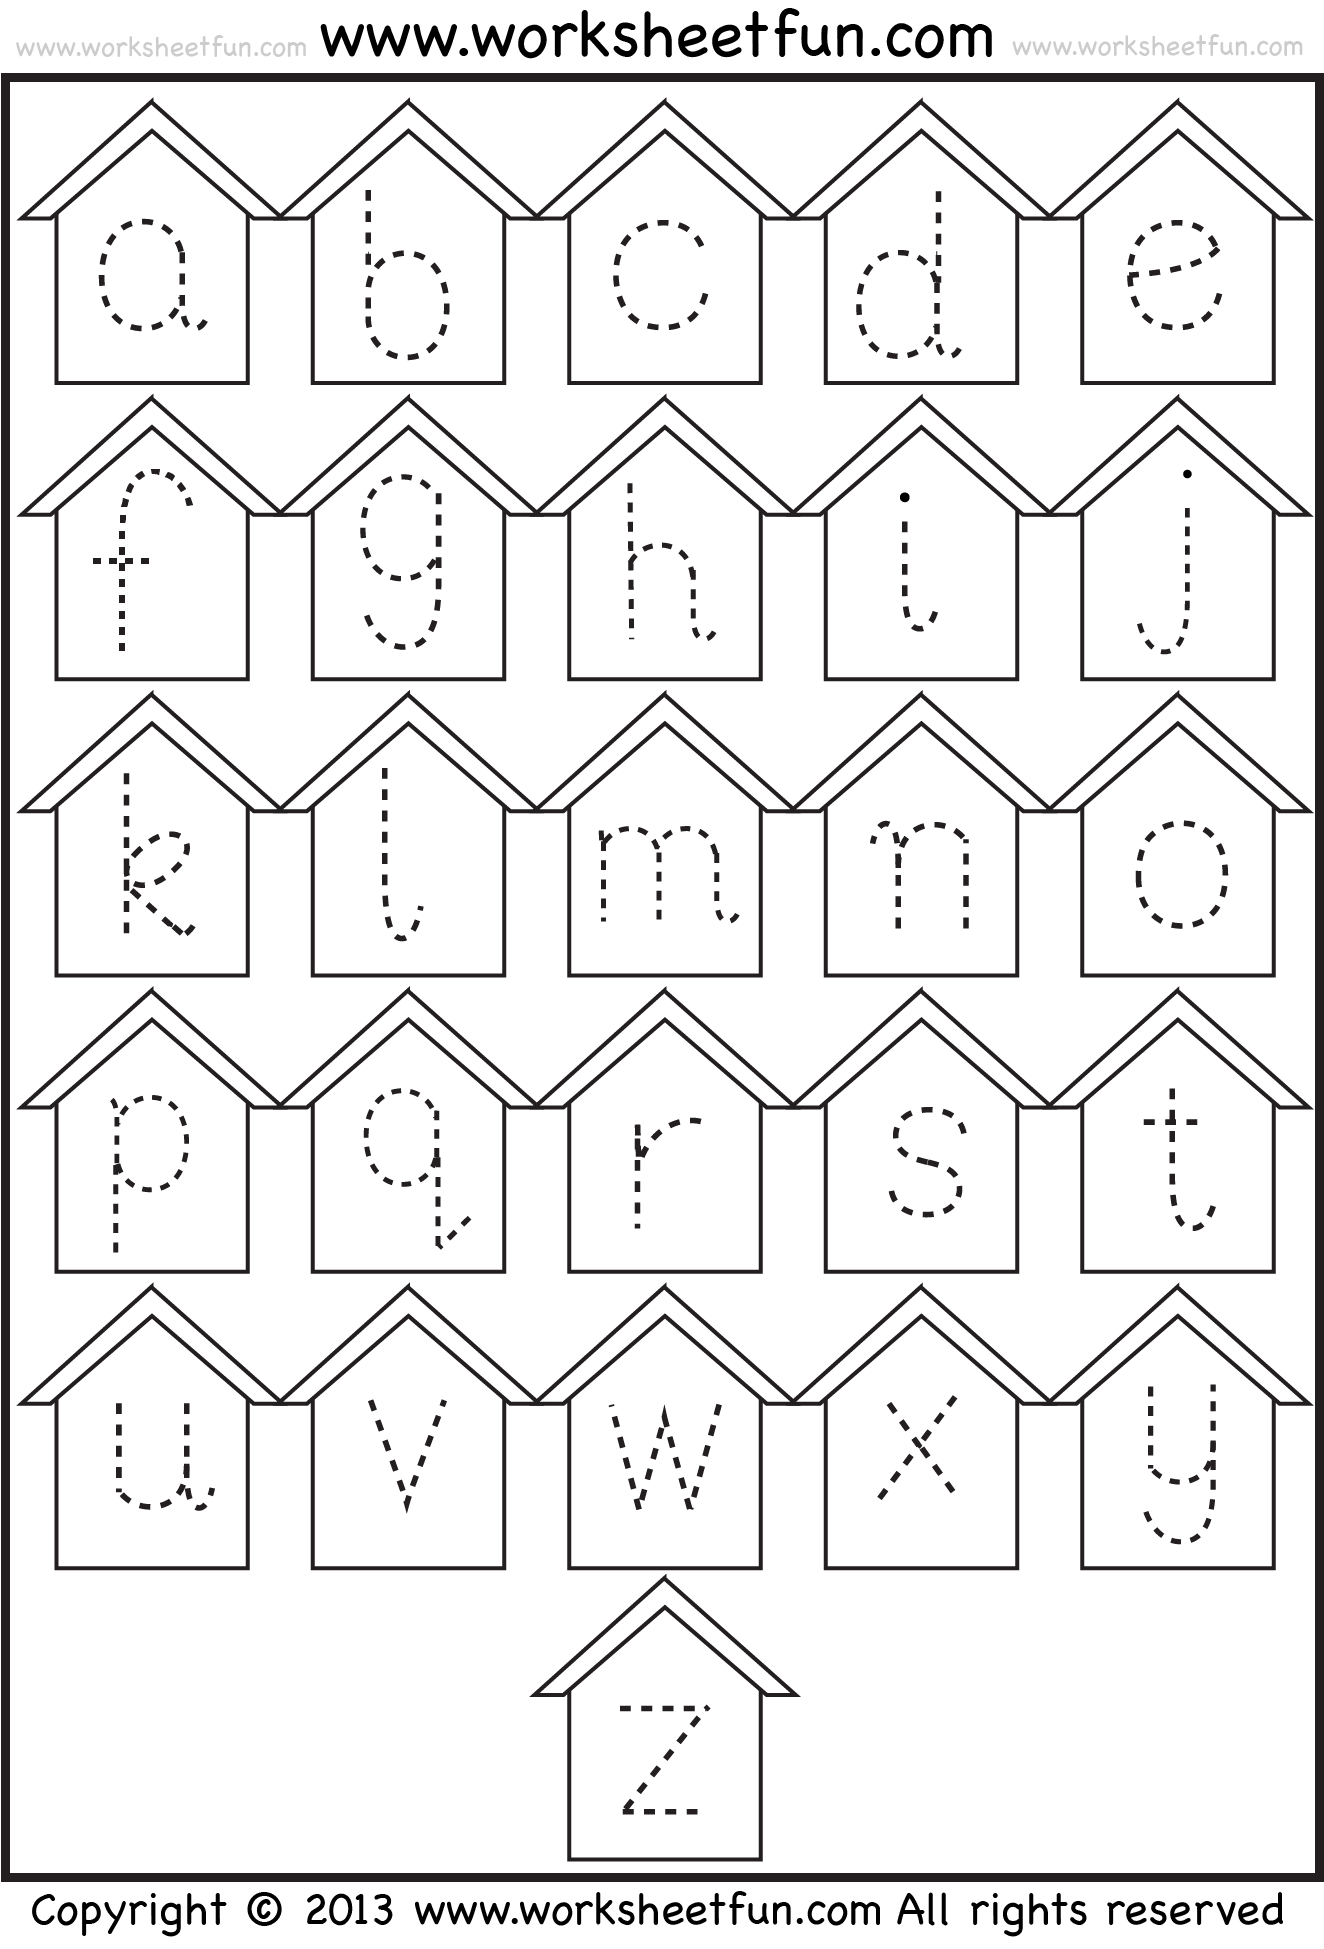 Tracing_Small_Letters_Birdhouse_1 Staggering Alphabet